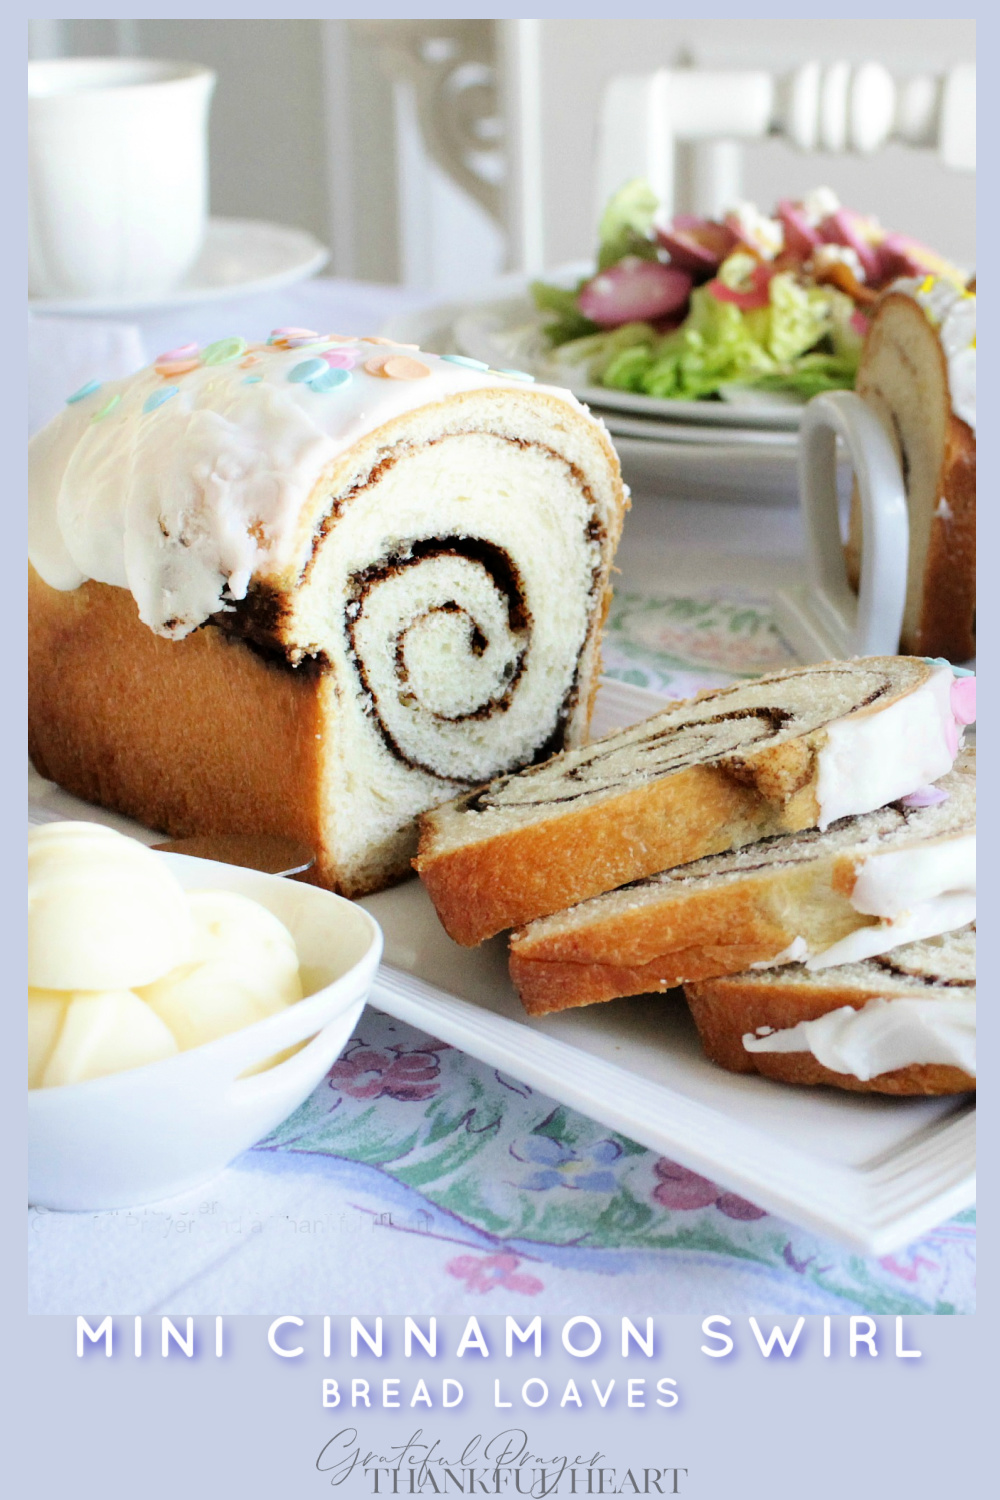 A vintage Chic Easter dinner for two includes an easy recipe for mini cinnamon swirl bread loaves.